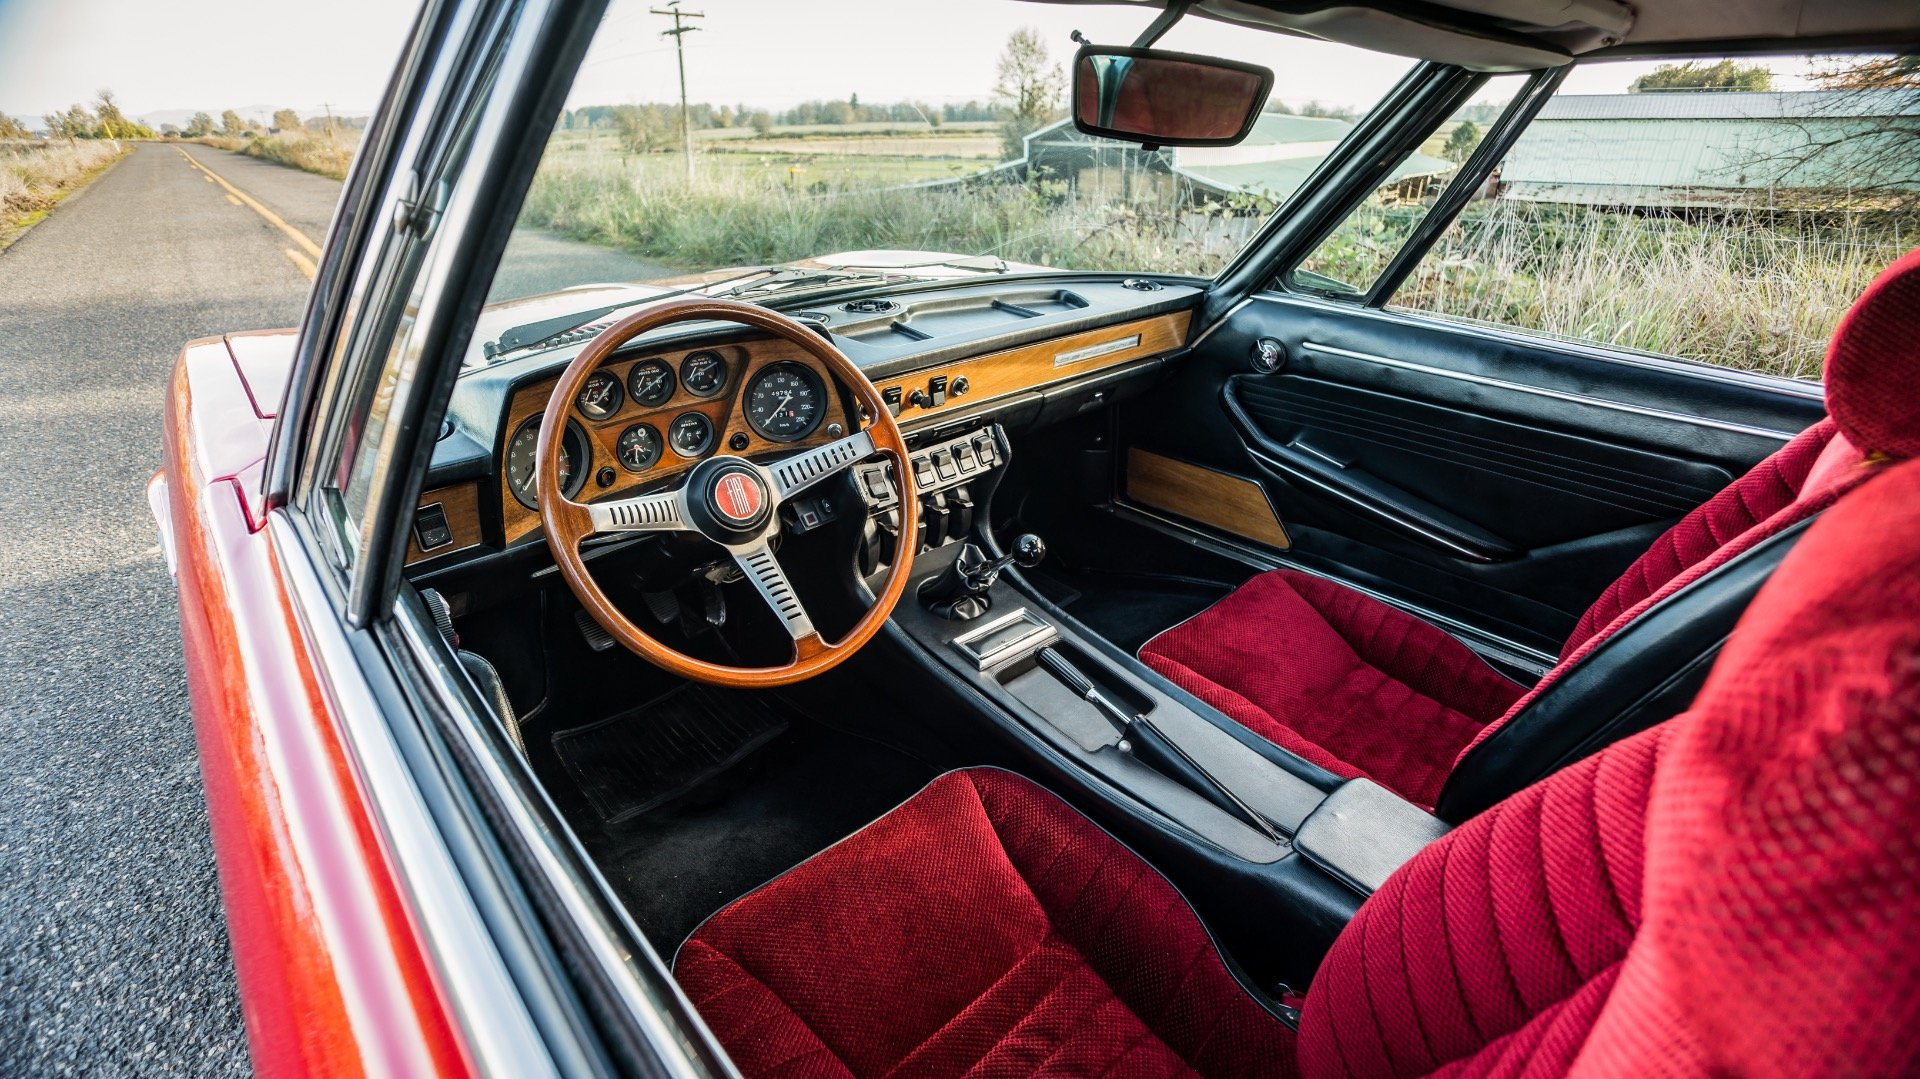 1970 Fiat Dino 2400  = Red(~)Black driver 31k miles  $68k For Sale (picture 3 of 6)